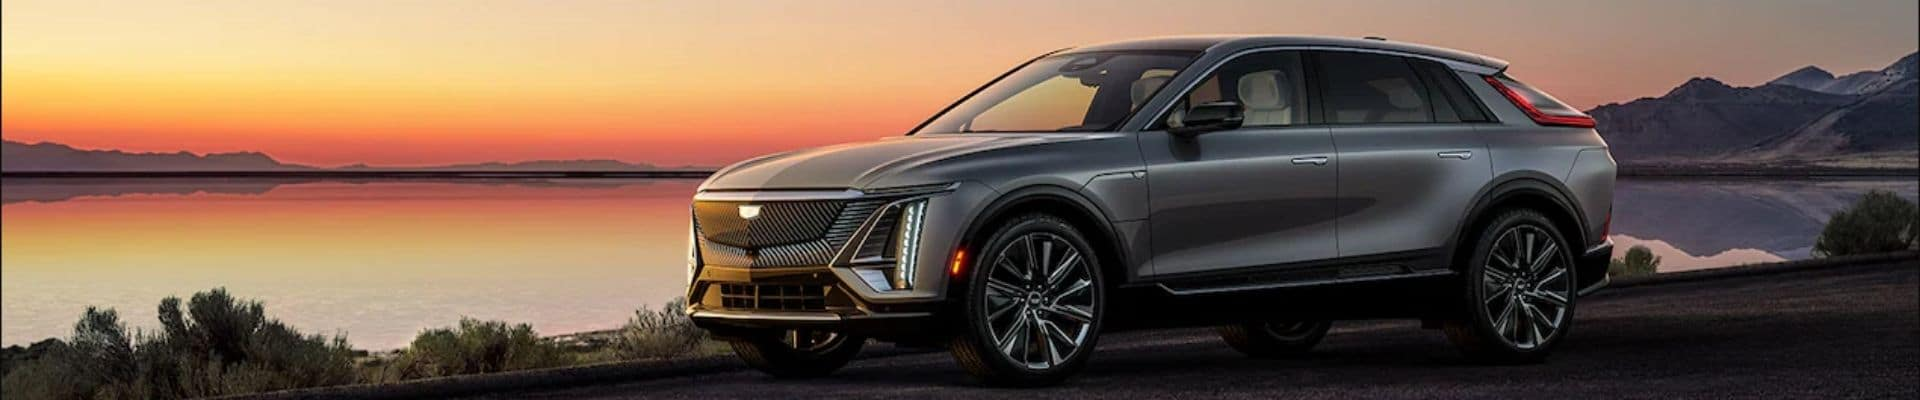 2023 Cadillac Lyriq With Sunset and Water Background